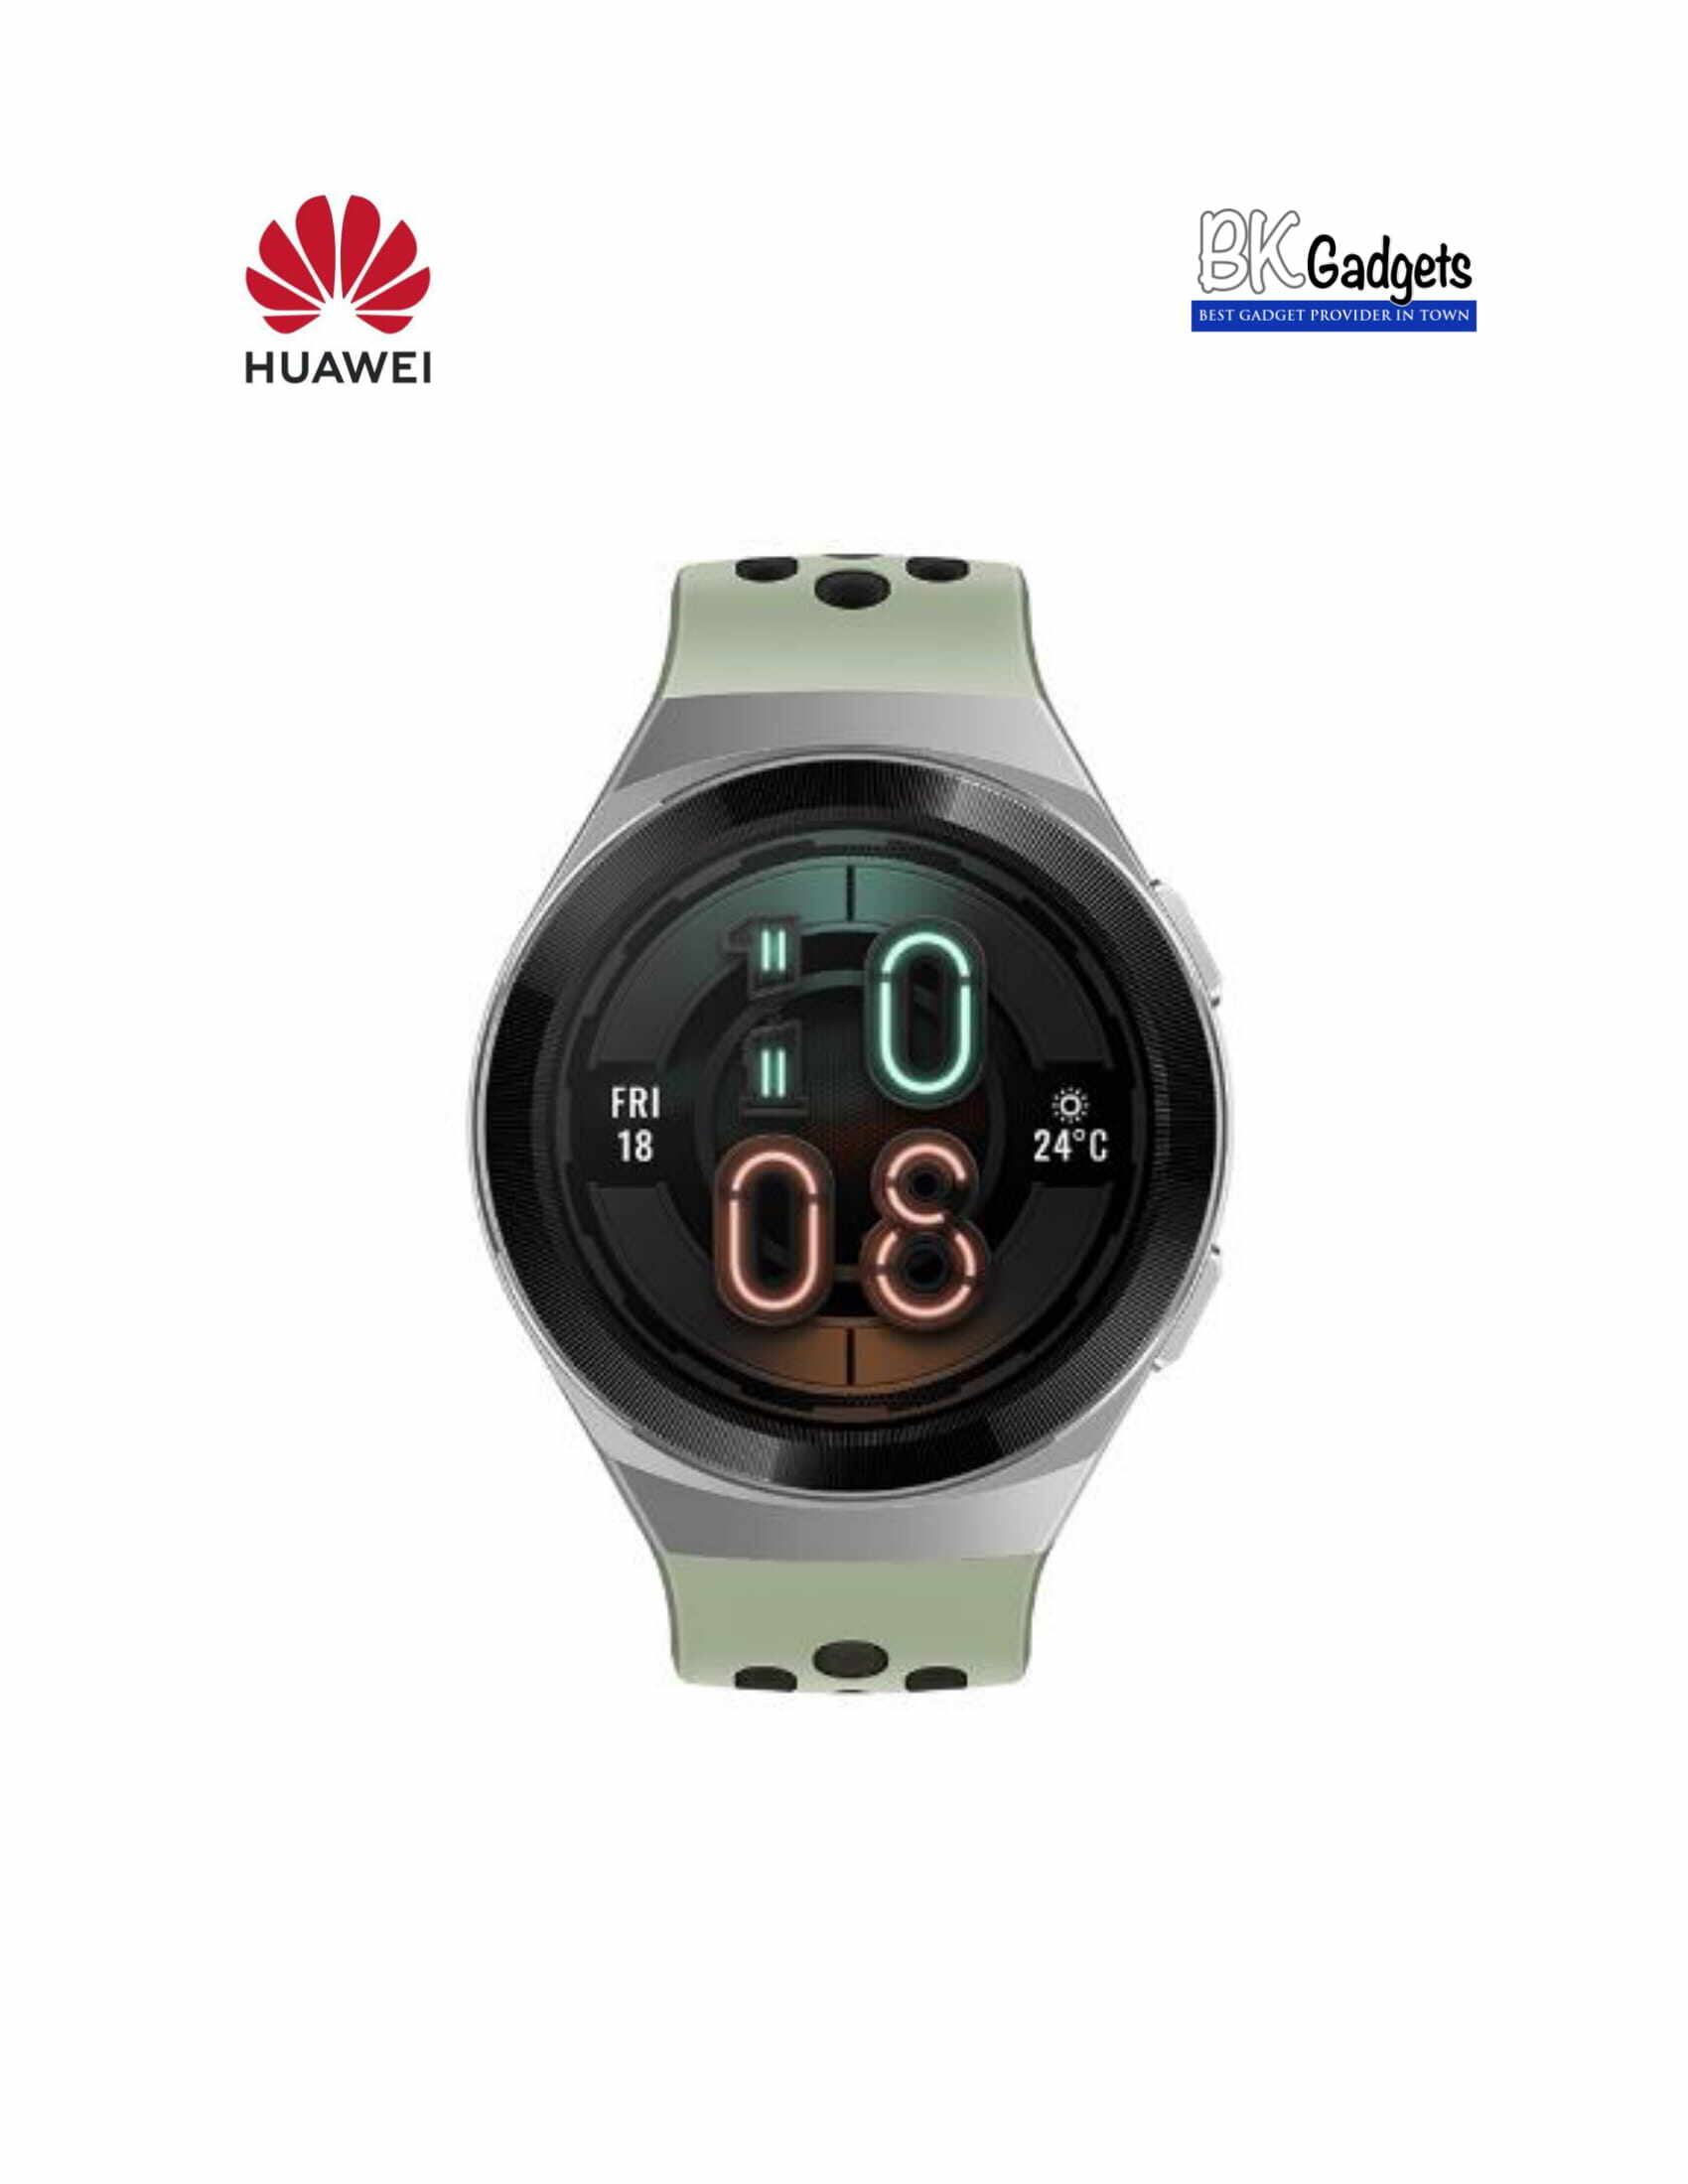 HUAWEI WATCH GT 2e Mint Green + FREE Strap